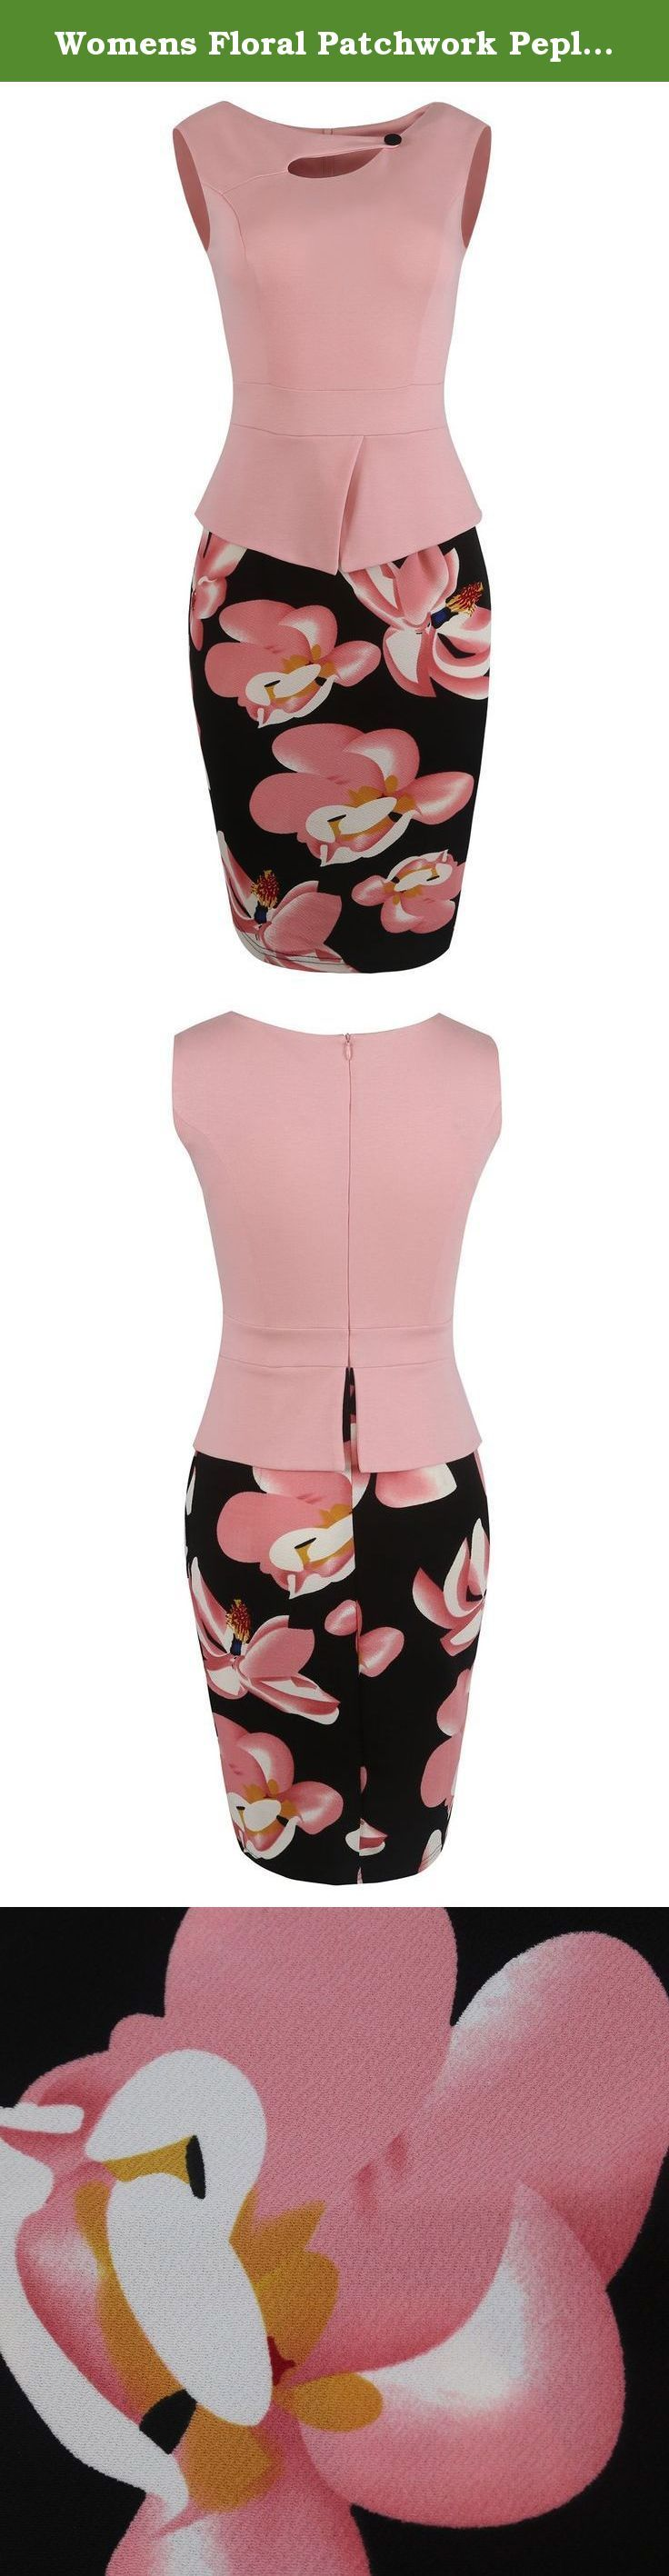 """Womens Floral Patchwork Peplum Sleeveless Summer Office Work Dress(Pink,L). Material: 75% Cotton + 25% Polyester Color: Navy & Red & Pink & Yellow & Black & Watermelon & Light Purple Dress Length: Midi Dress & Knee Length Occasion: OL Style Evening Party Wear to Work Homecominmg Size Chart (just for reference) Size Small: bust----- 31.8-33.8"""", waist----- 25.5"""", hips----- 33.4-35.4"""", Length----- 38.5"""" Size Medium: bust----- 33.8-35.8"""", waist----- 27.5"""", hips----- 35.4-37.4"""", Length…"""